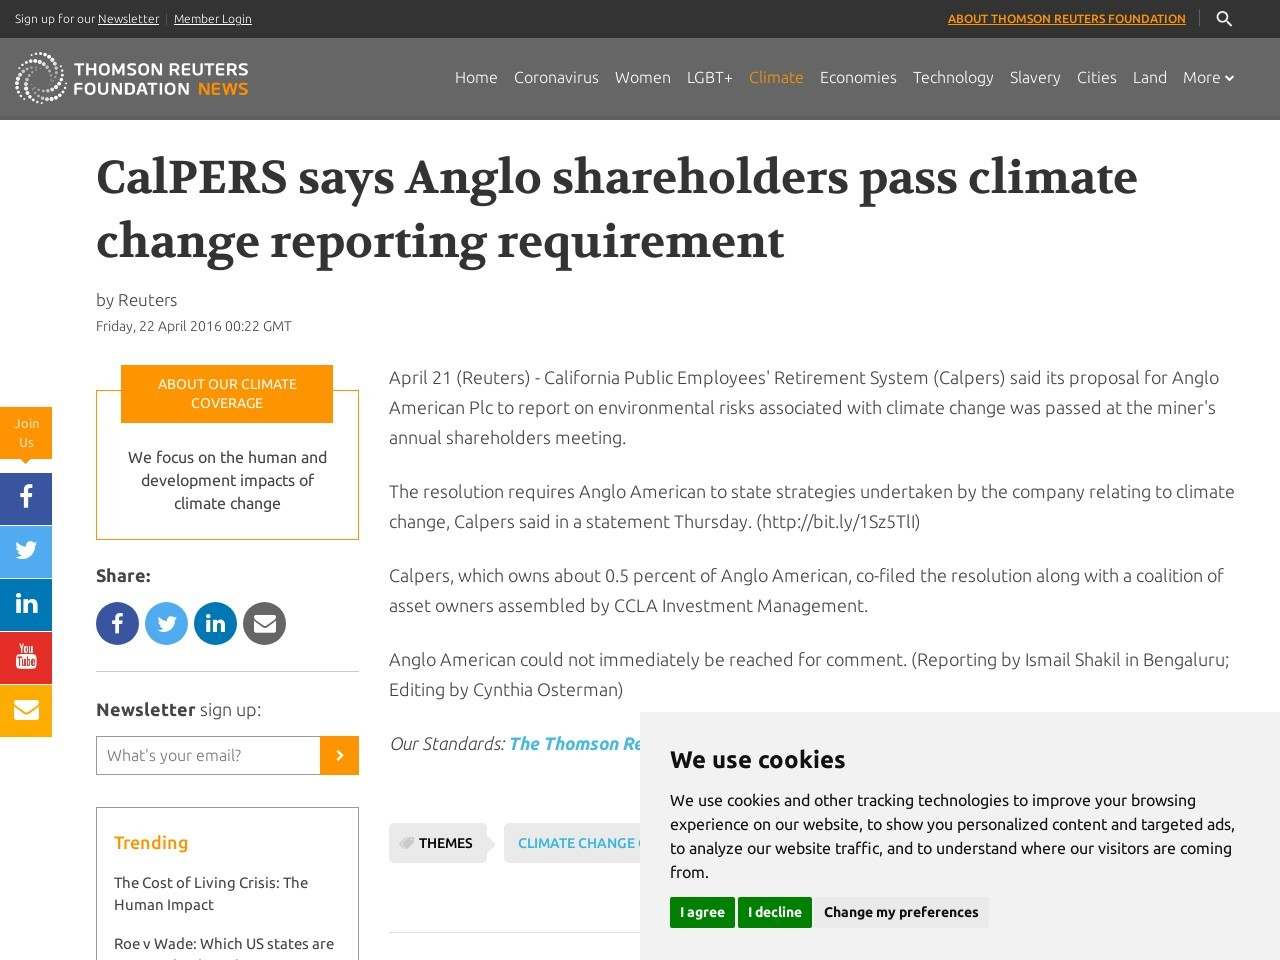 CalPERS says Anglo shareholders pass climate change reporting requirement